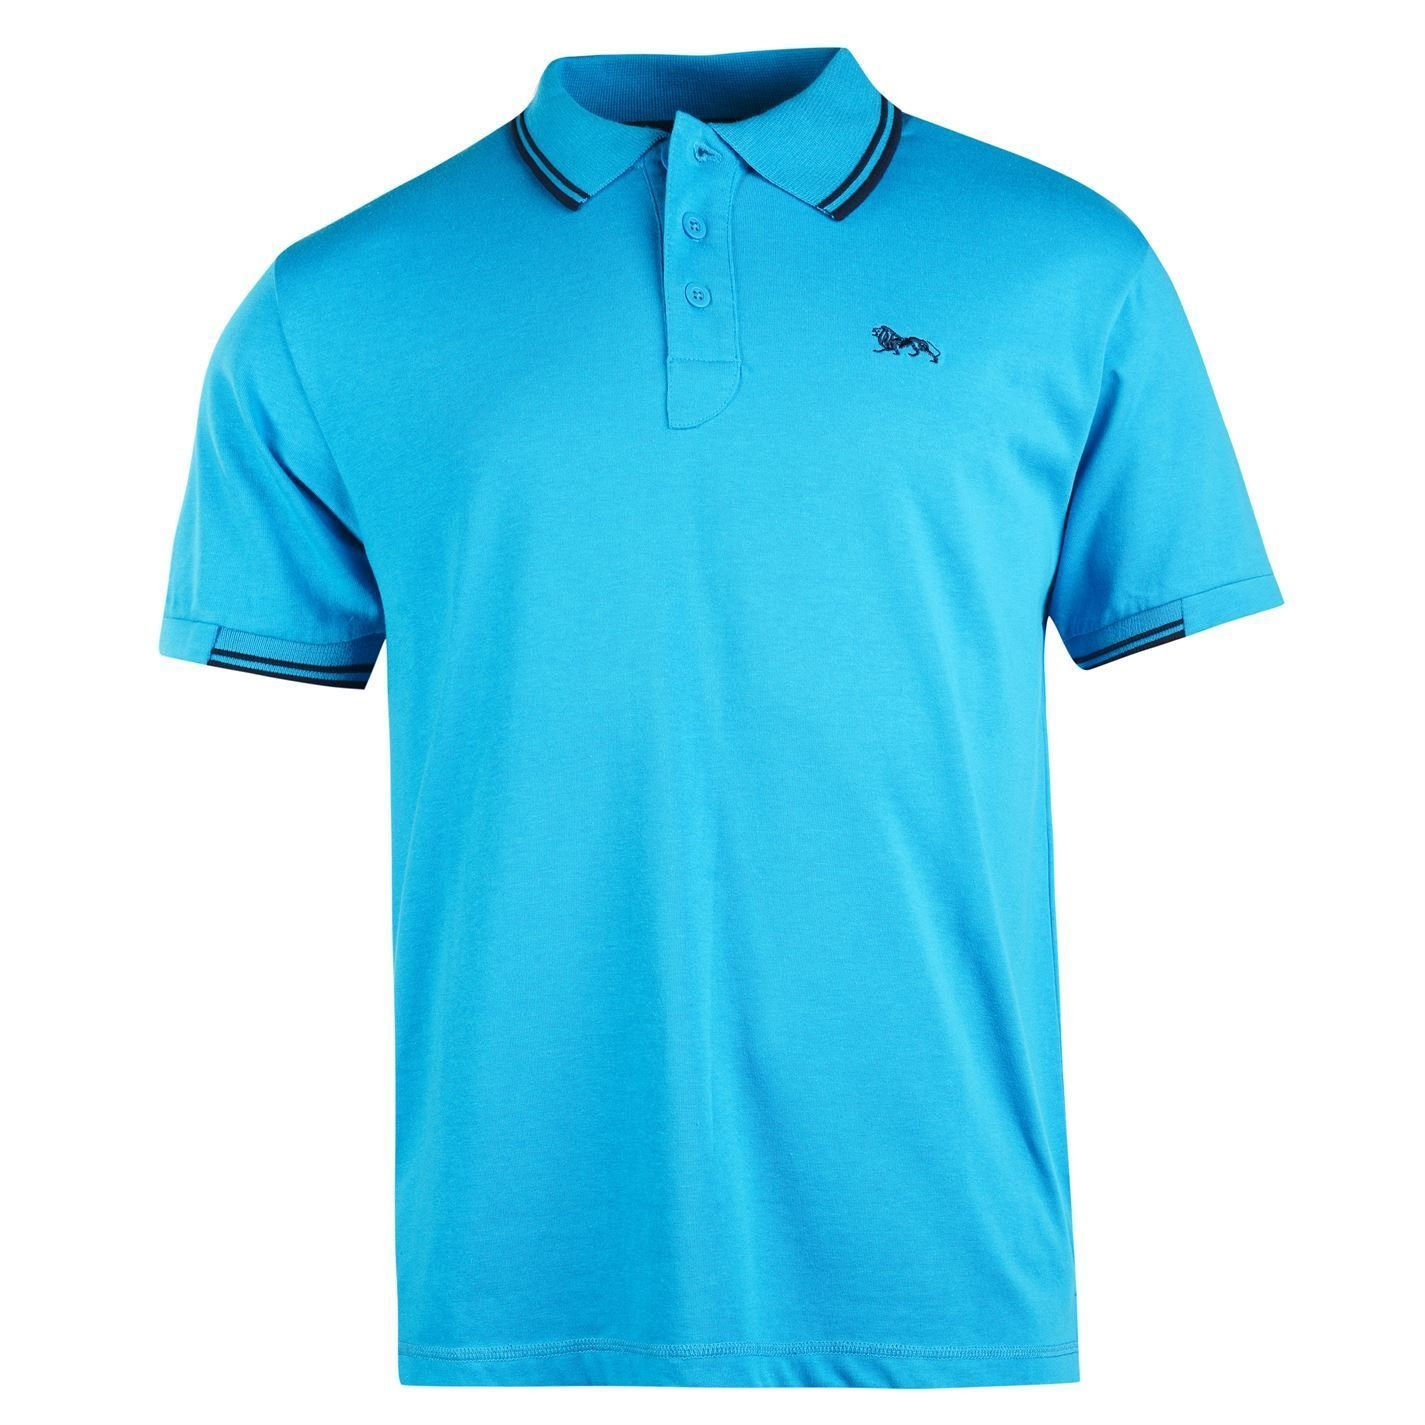 Lonsdale - Polo - para Hombre Bleu Clair/Bleu Marine Small: Amazon ...